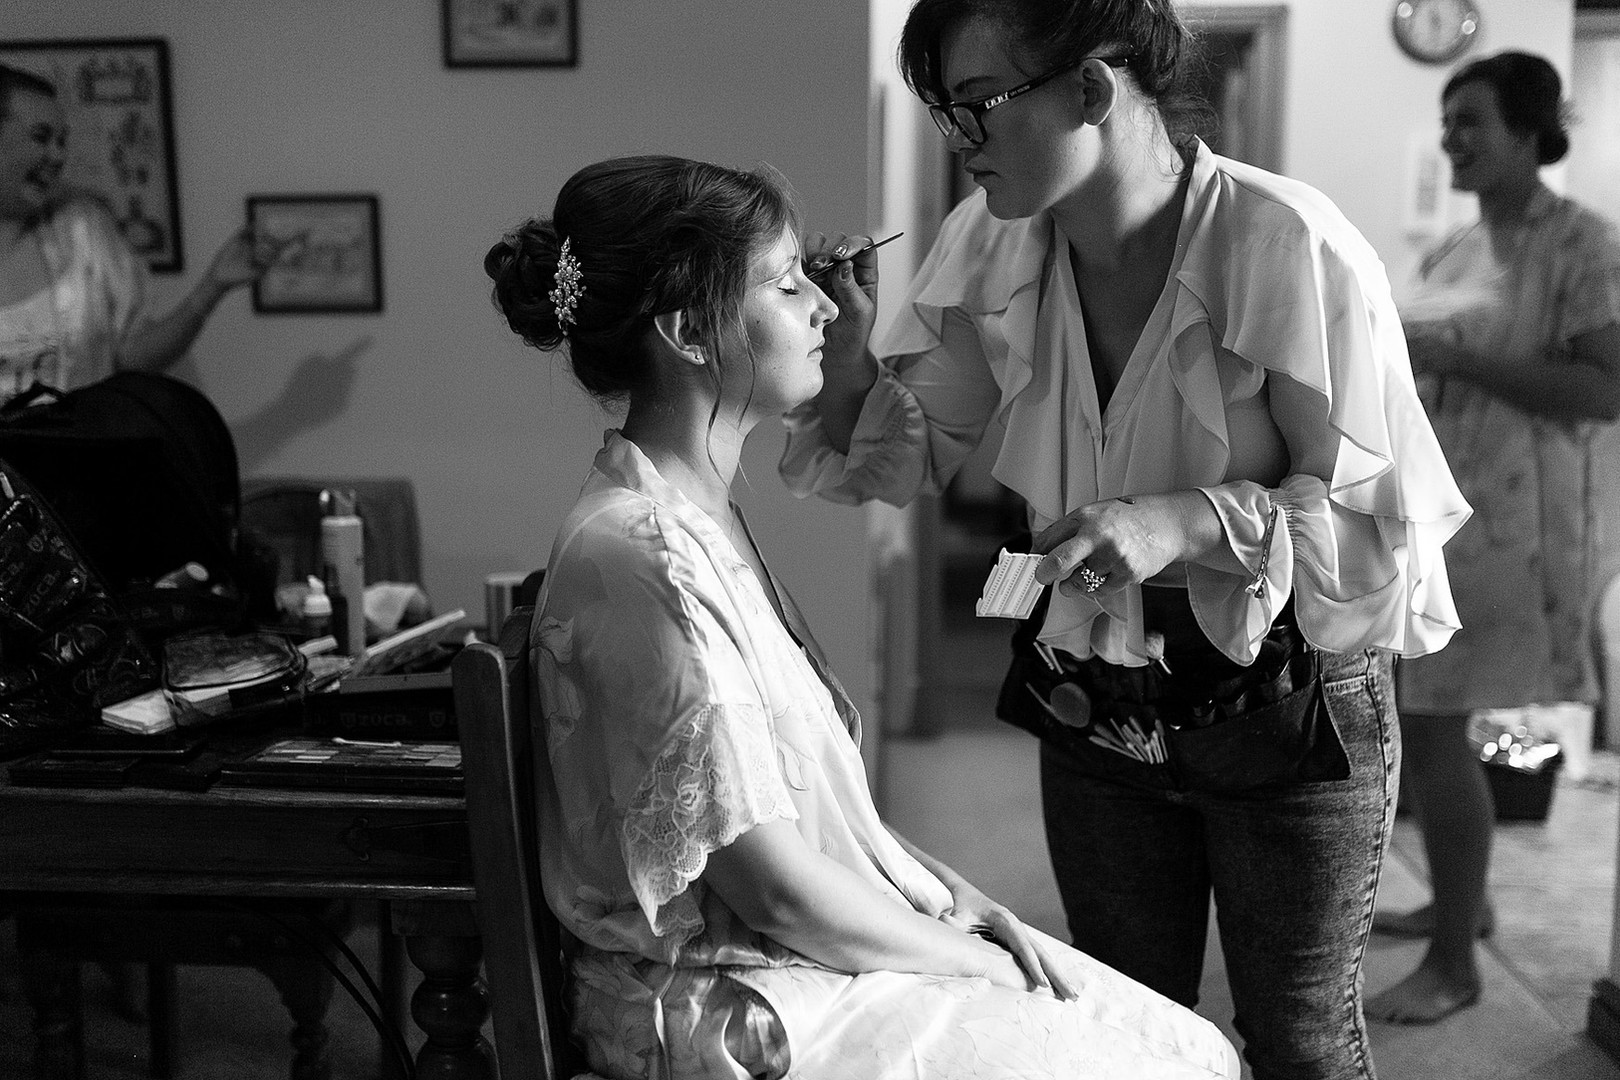 Perfecting the look for Ruth's Bridal Makeup.